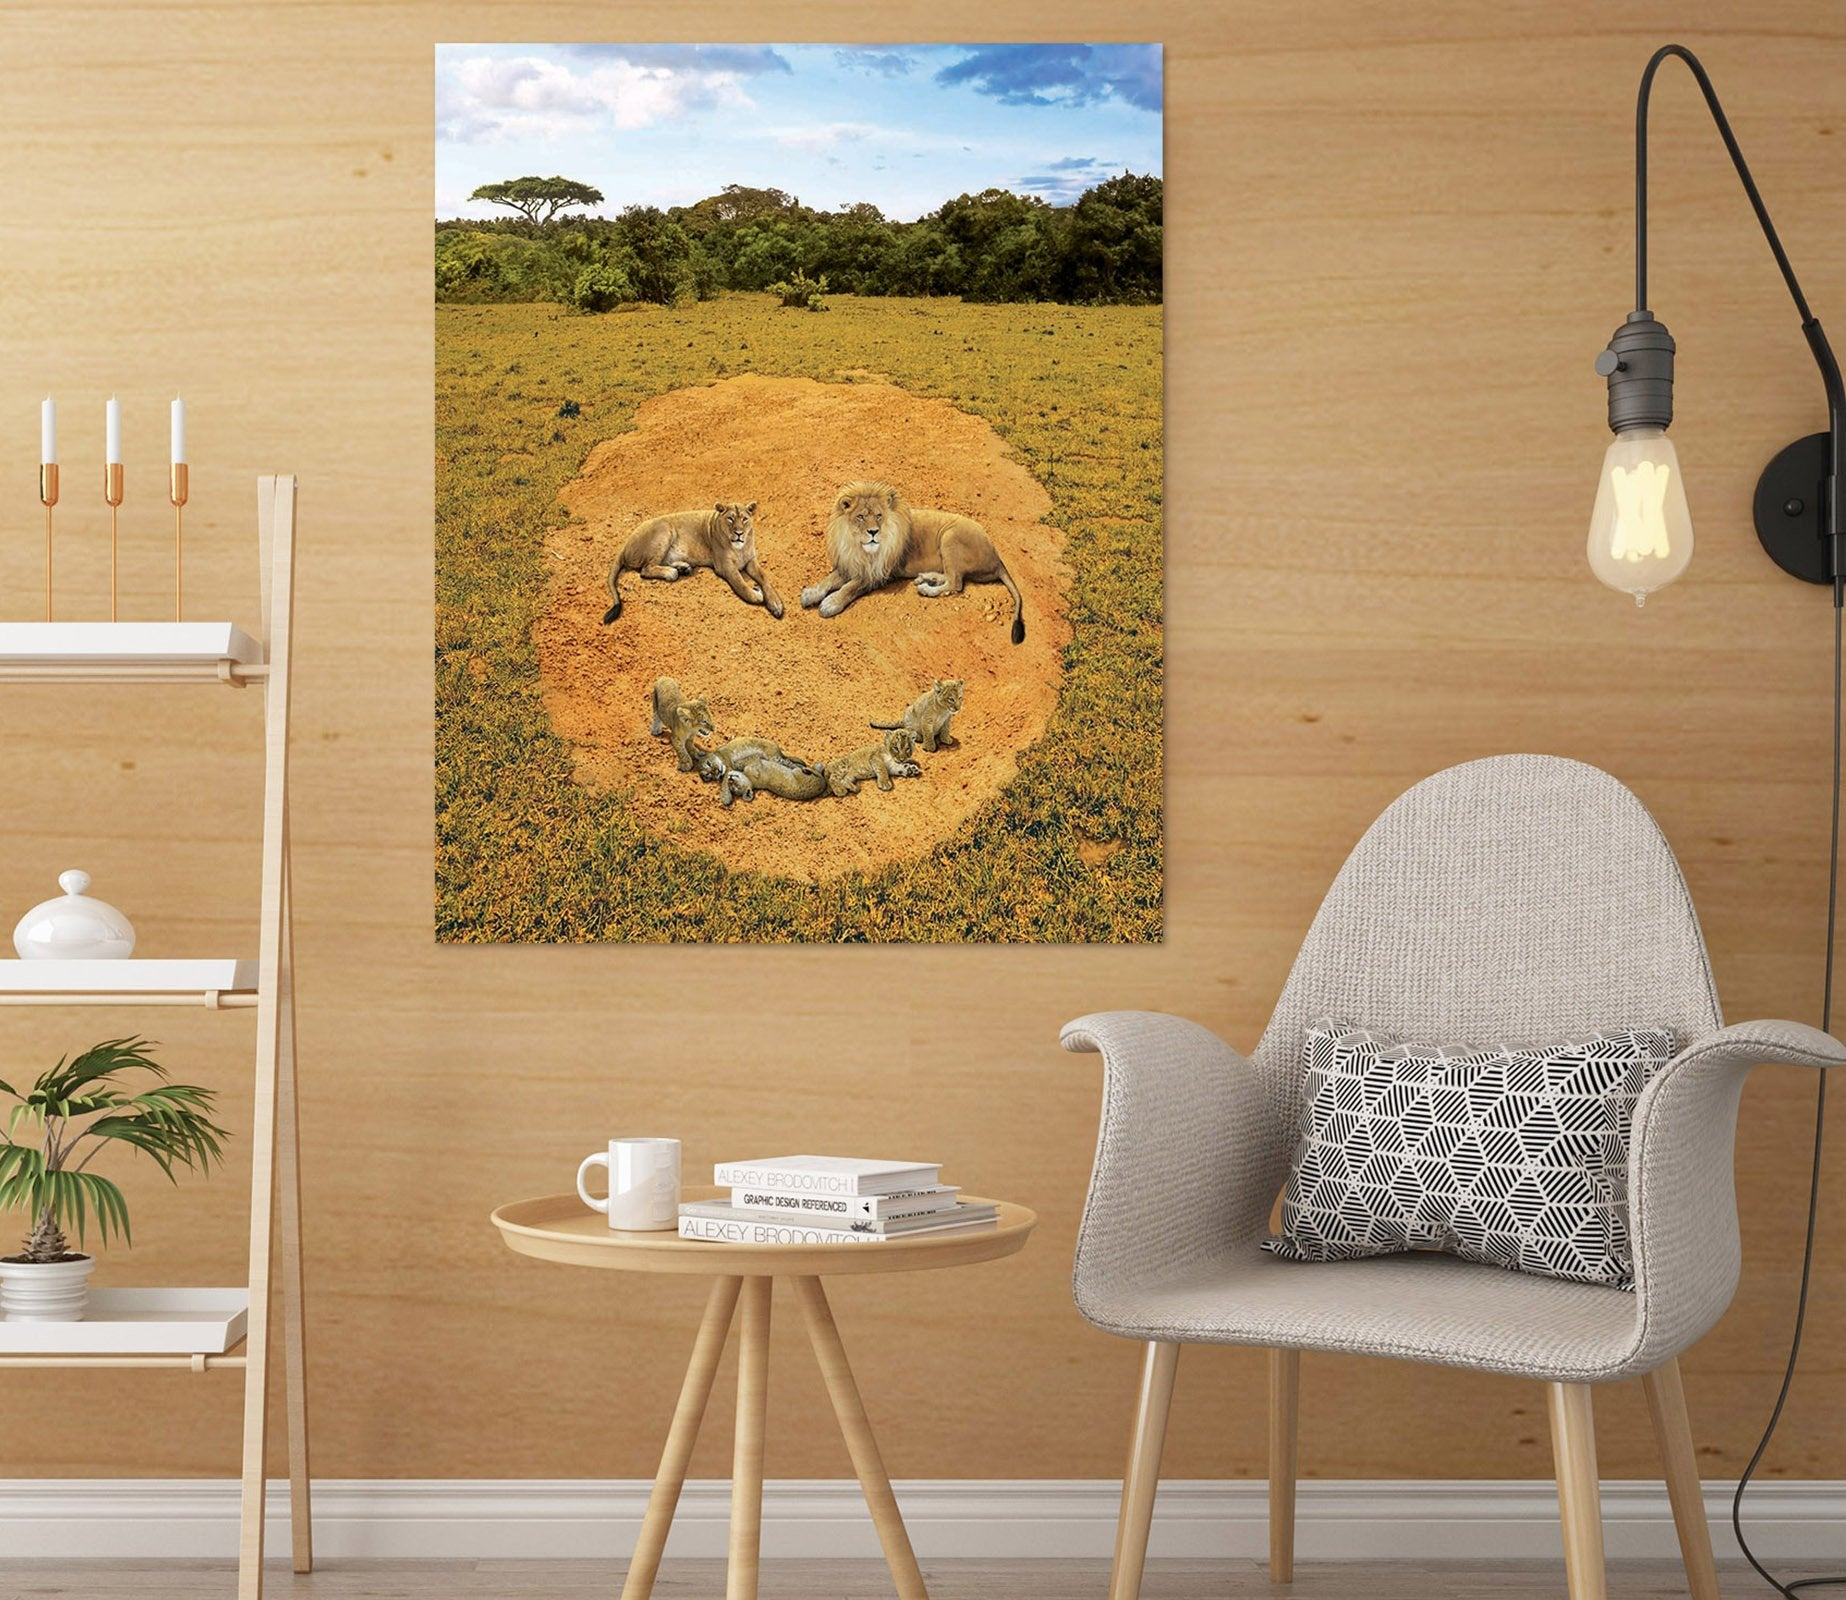 3D A Lion's Happiness Def 004 Vincent Hie Wall Sticker